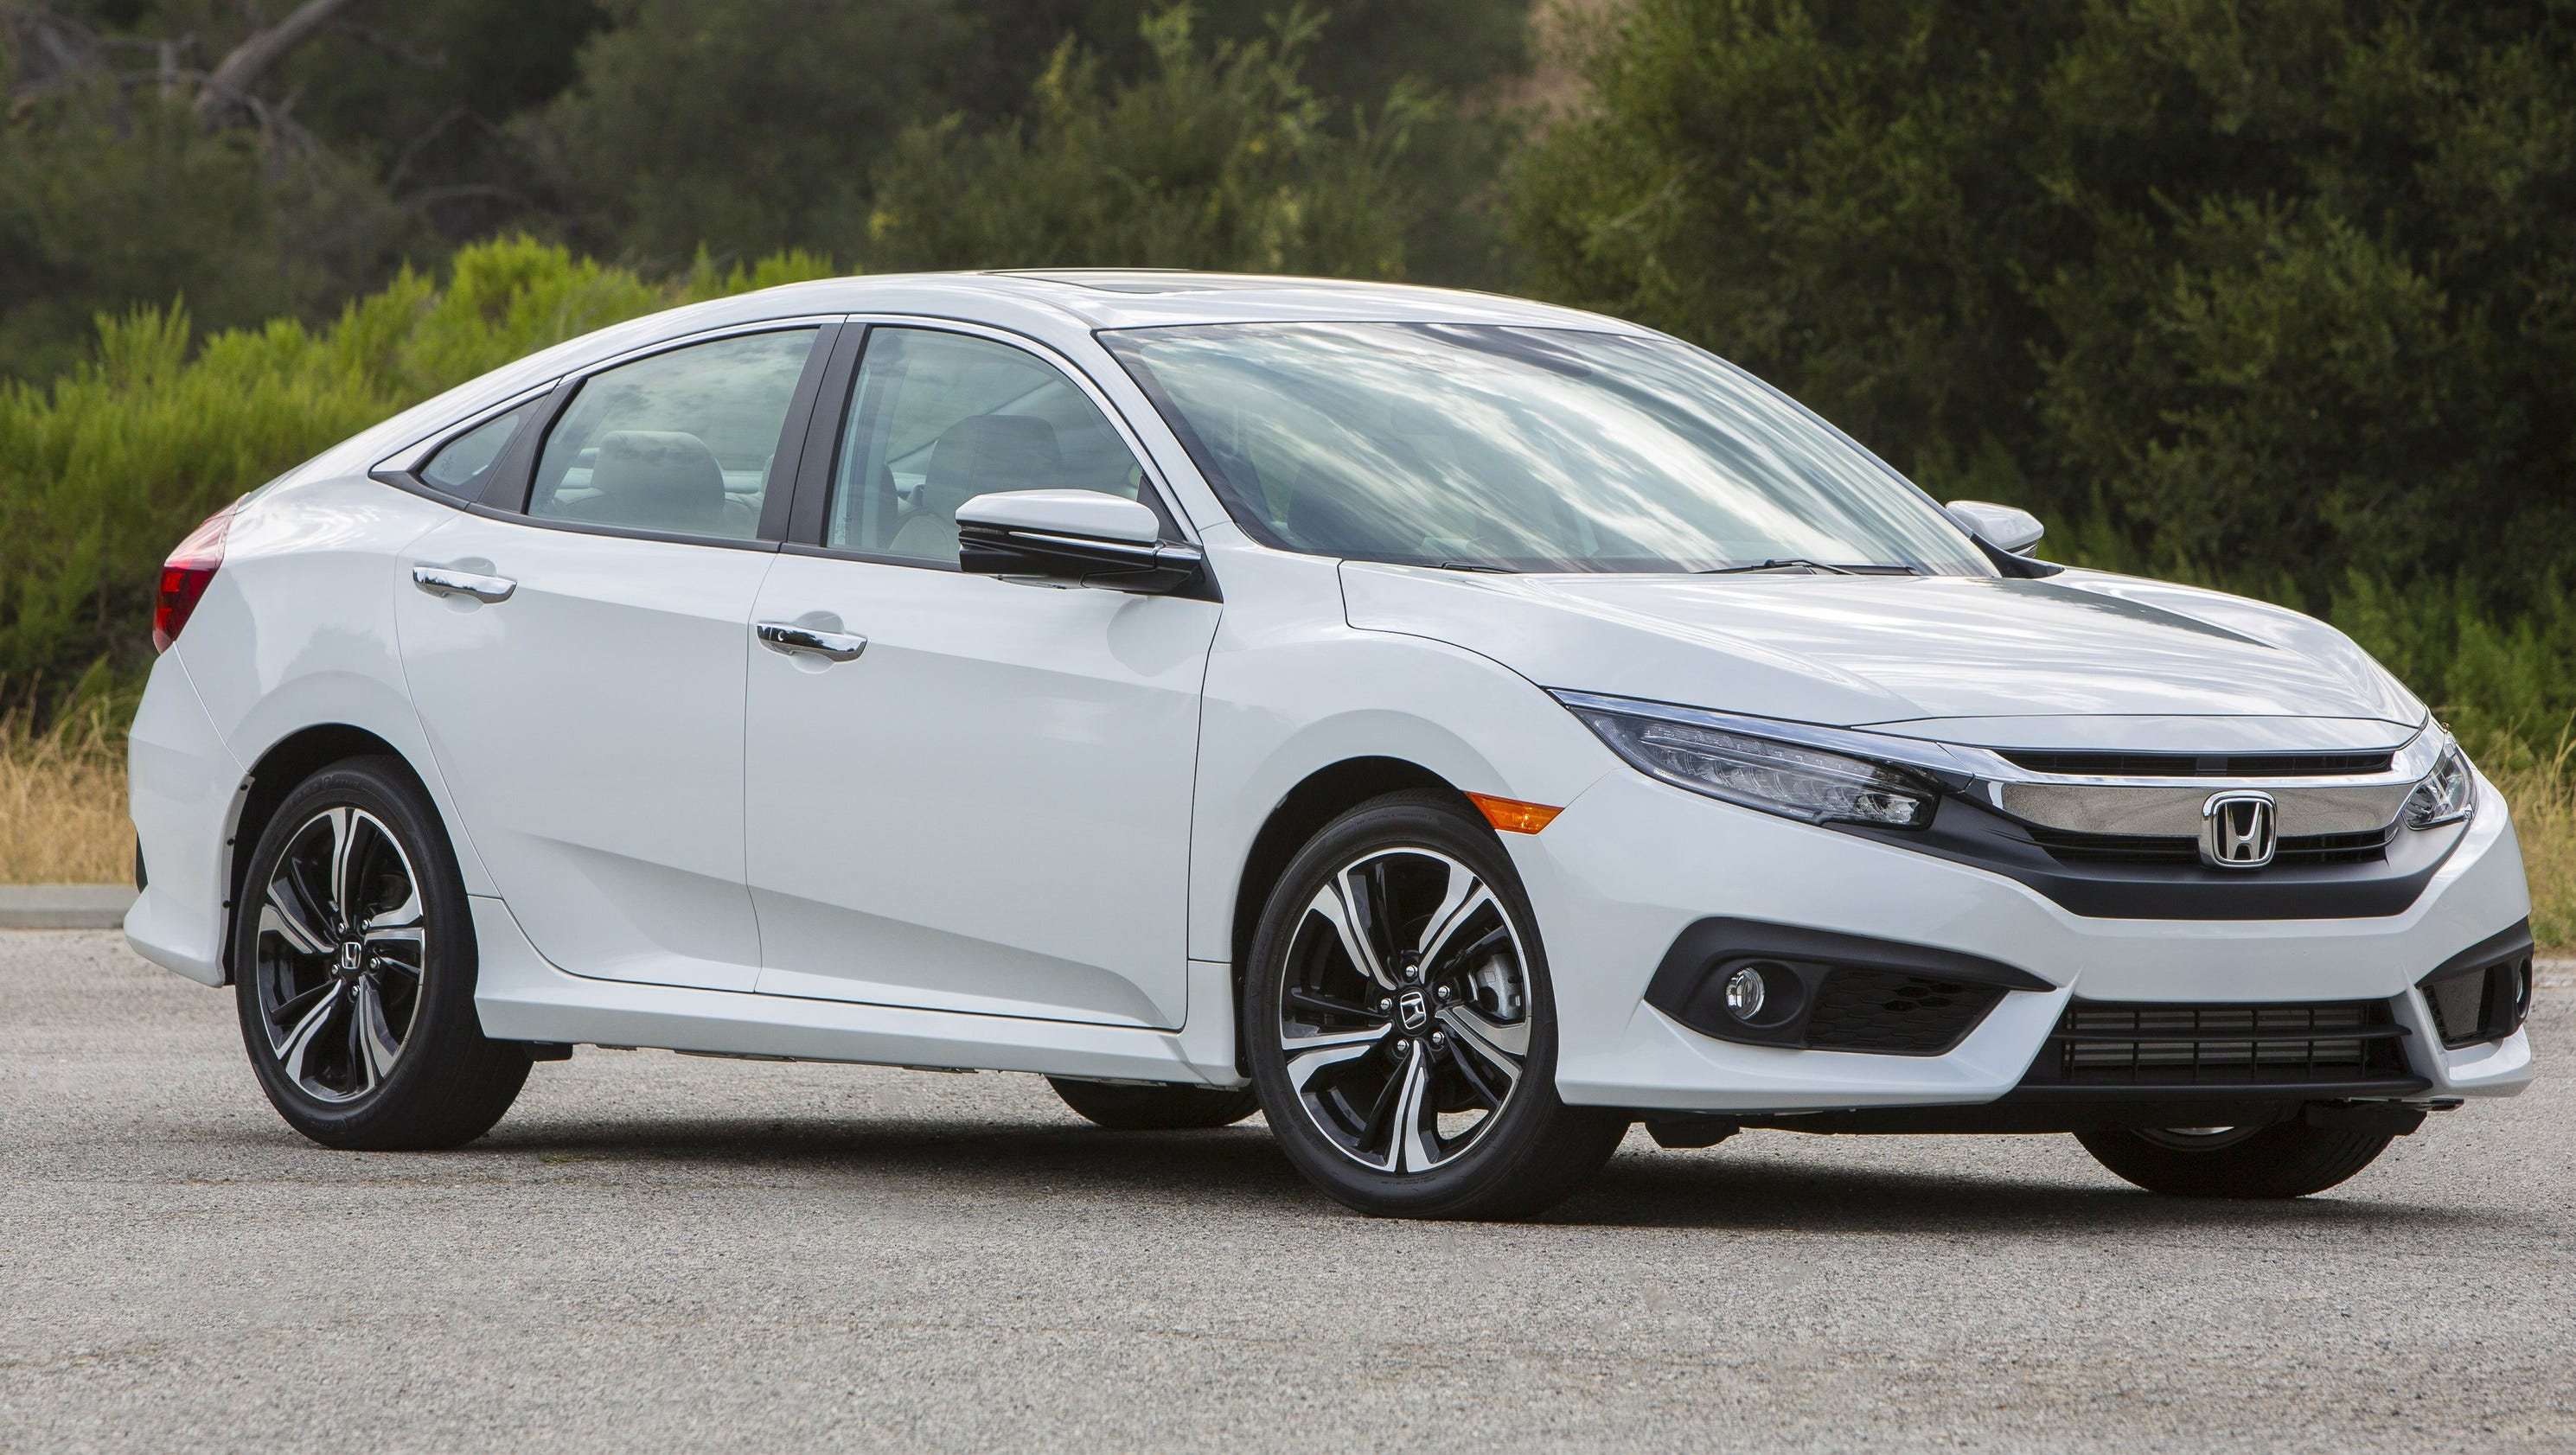 new bigger honda civic breaks 40 mpg barrier. Black Bedroom Furniture Sets. Home Design Ideas